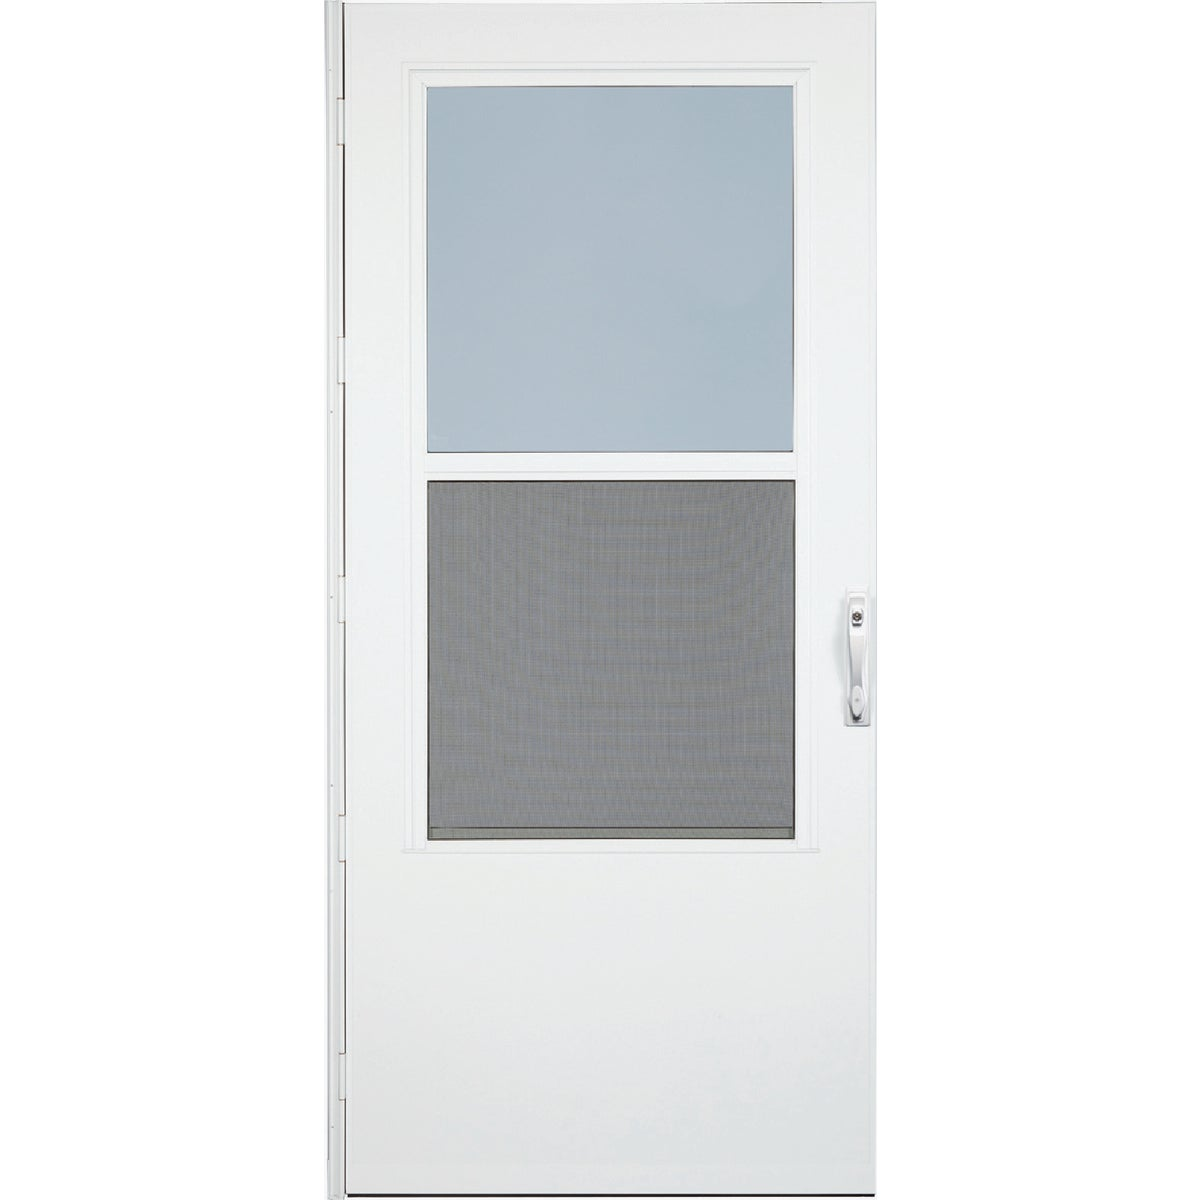 "36"" WHT SELF-STORM DOOR - 37050032 by Larson Mfg Co"